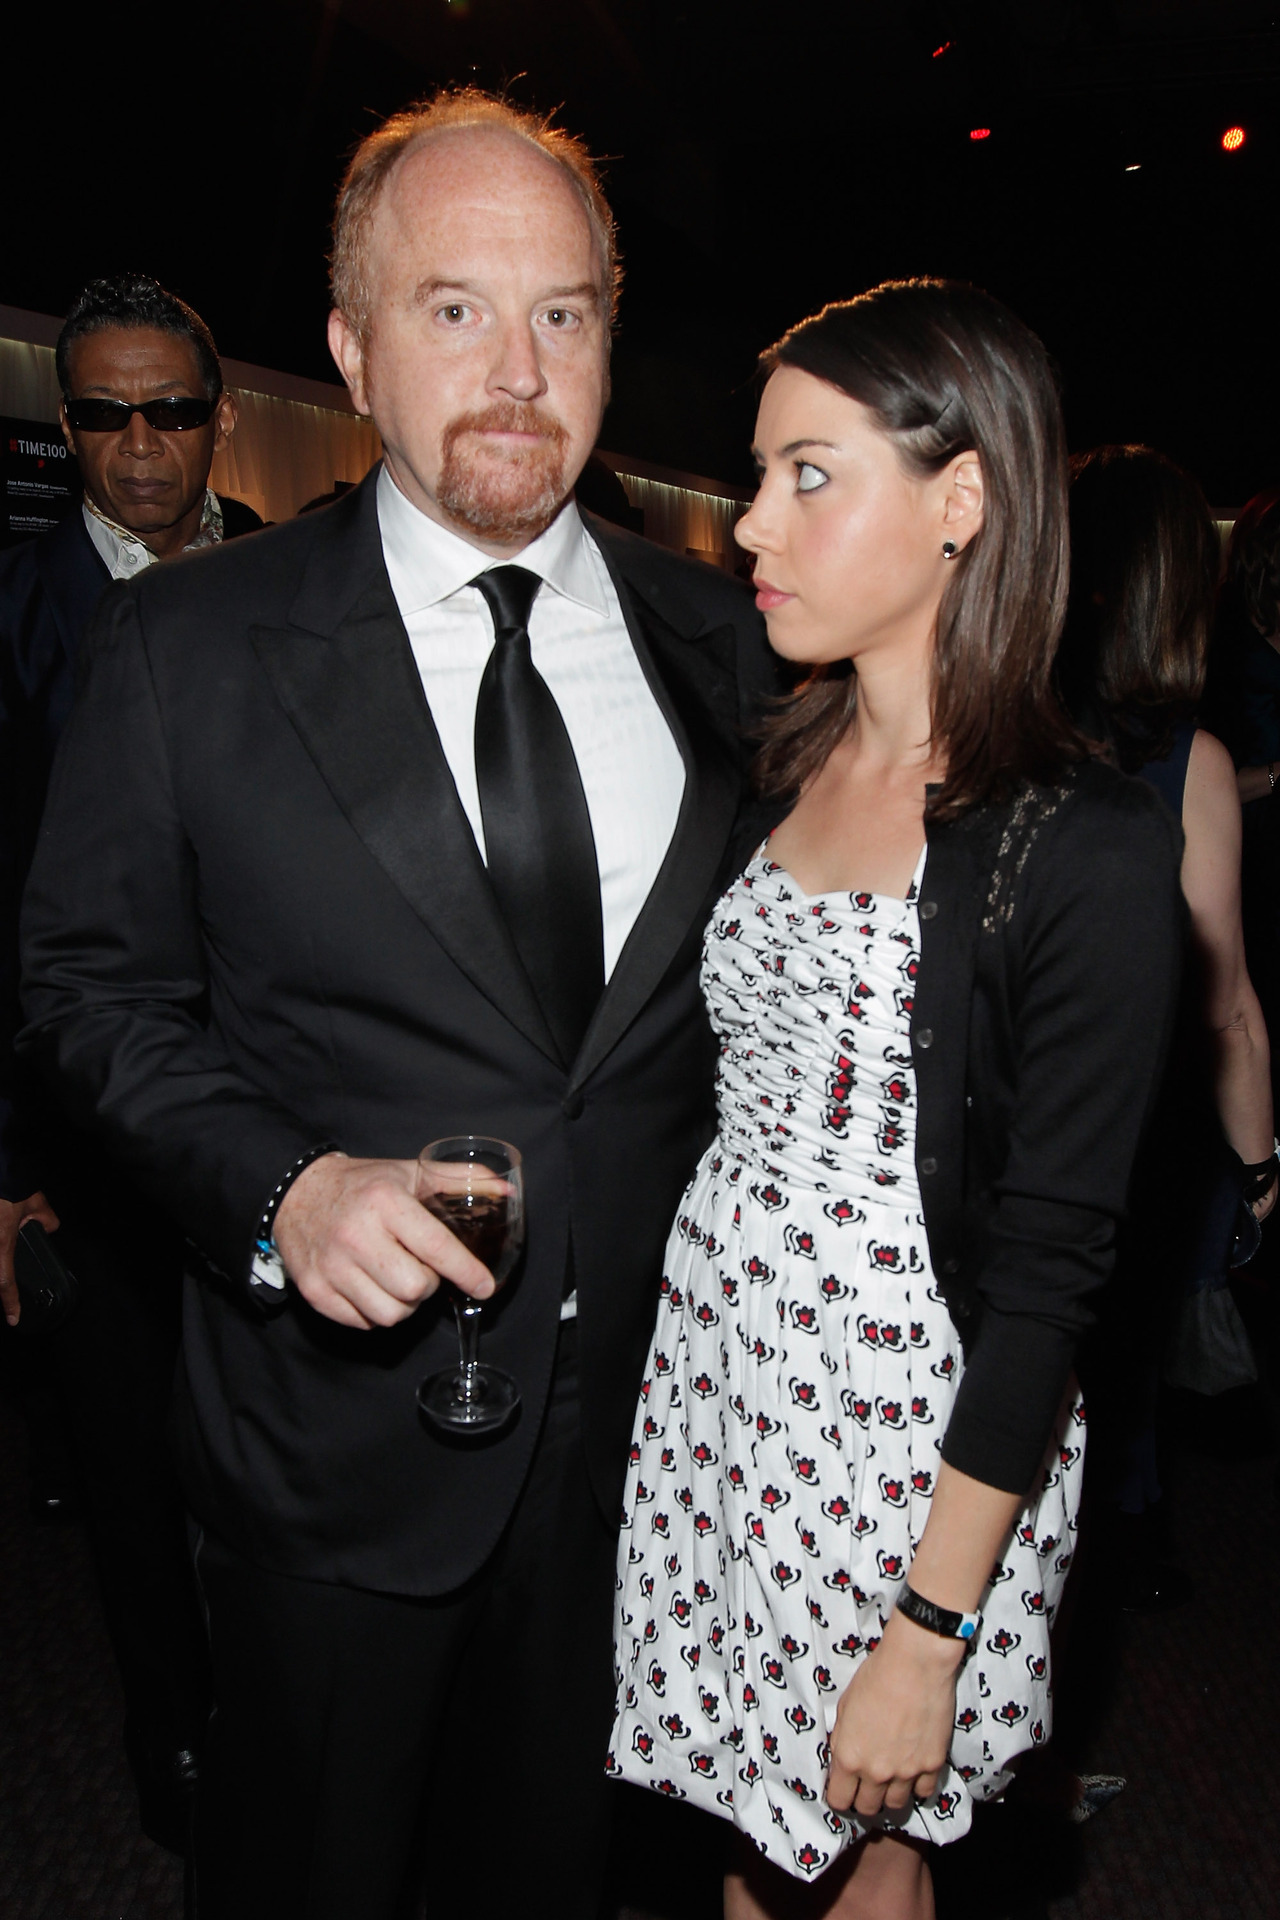 awesomepeoplehangingouttogether:  Louis C.K. and Aubrey Plaza  !!!